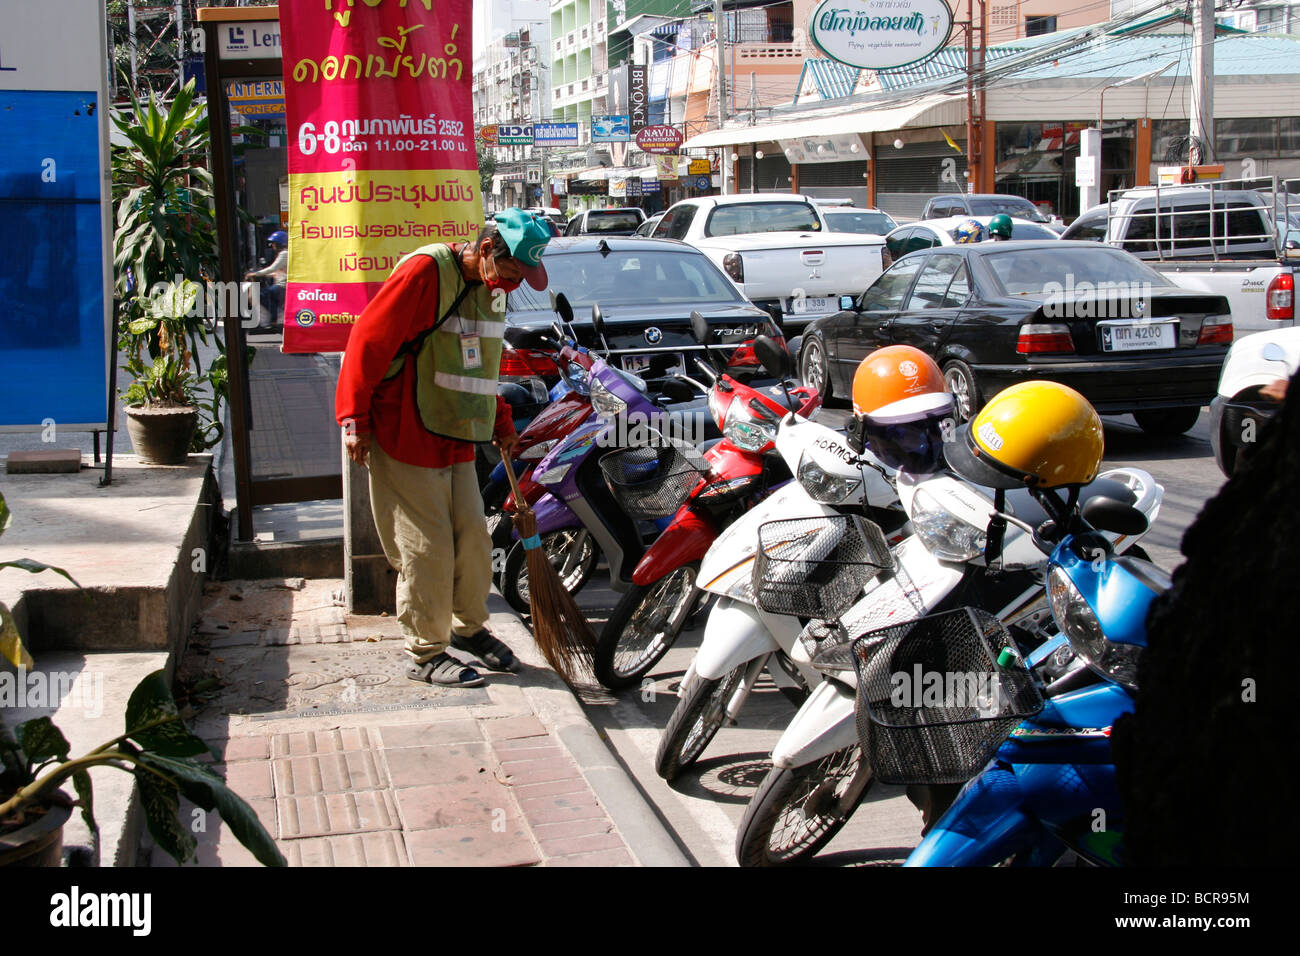 Thailand pavement obstruction - Stock Image